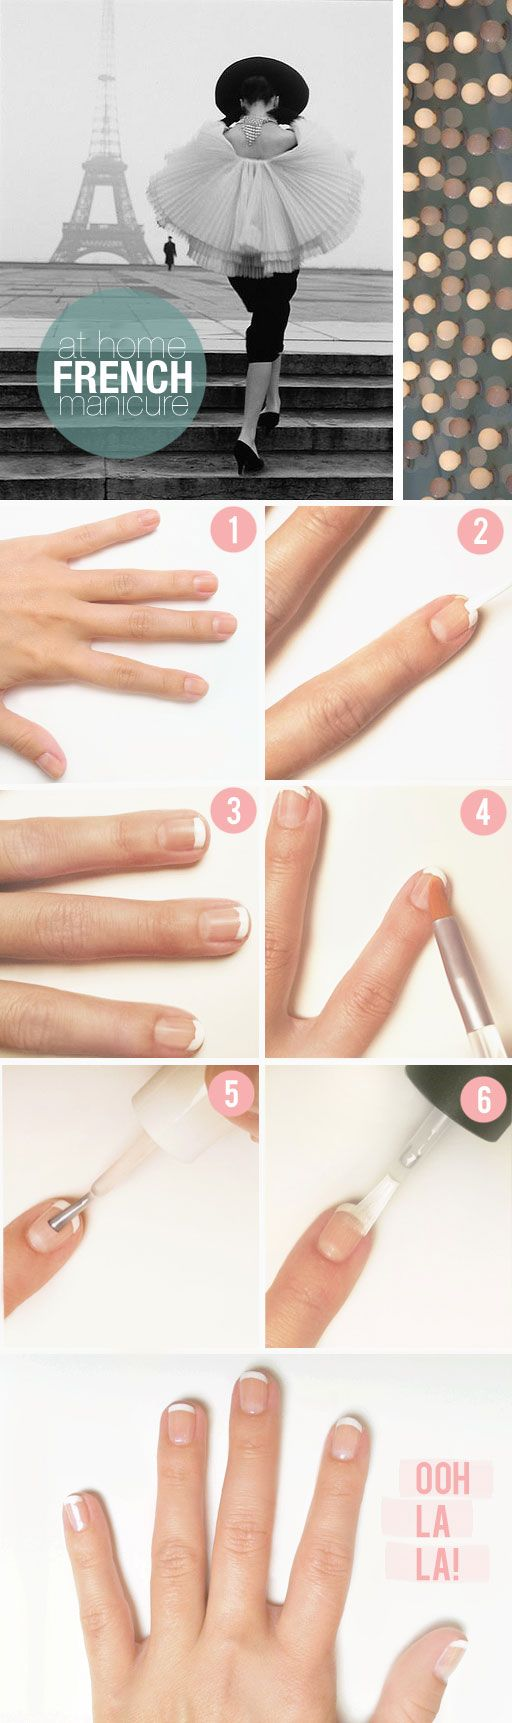 Do it yourself!: Nails Art, White Tips, Nail Polish, French Manicures, Pale Pink, Painting Brushes, Nails Polish, French Tips, French Nails